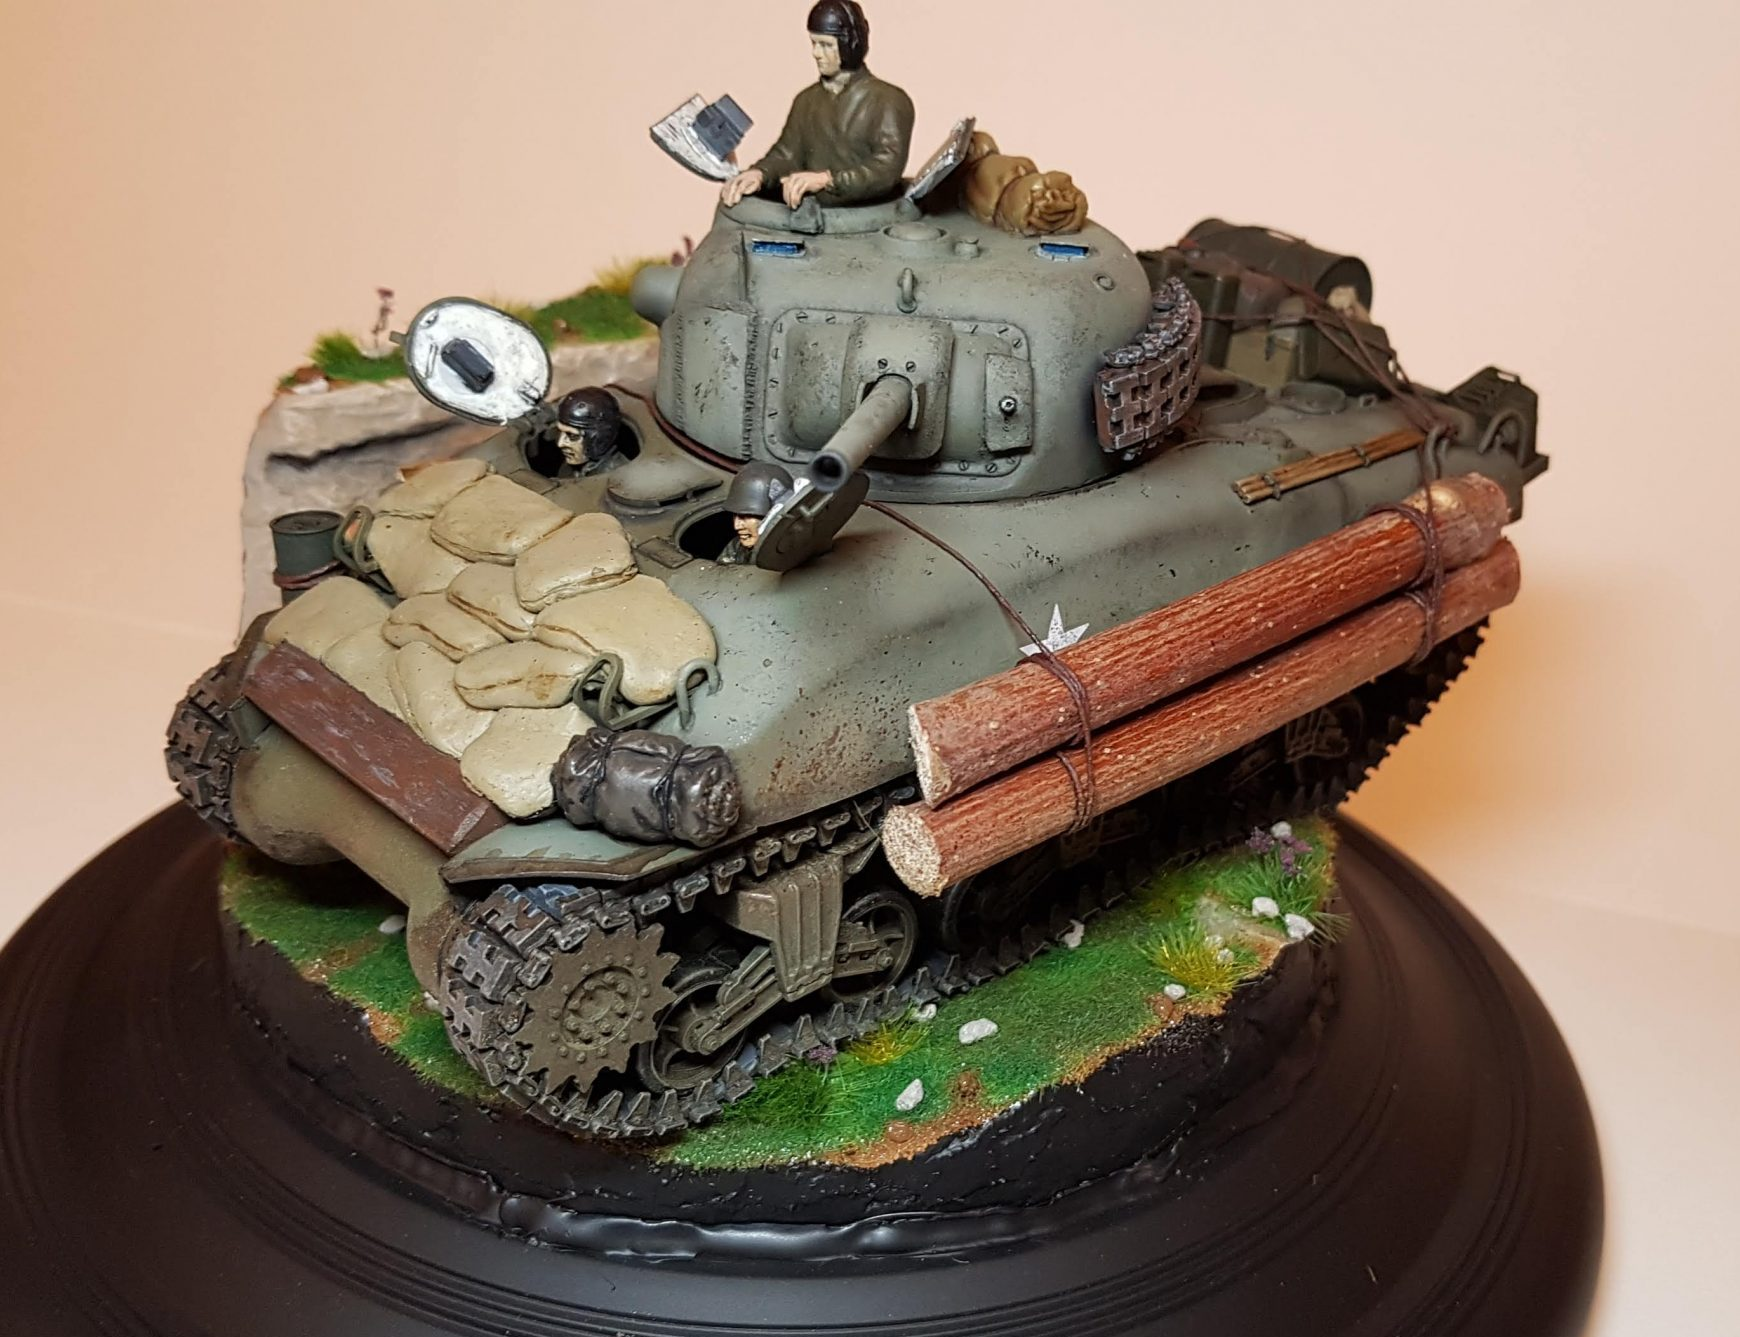 Kit-bashed - M4 Sherman (WW2) - Angle View - 1/35 Scale - Built By Wright Built - Tamiya, Italeri, Formations, Others, Sculpted